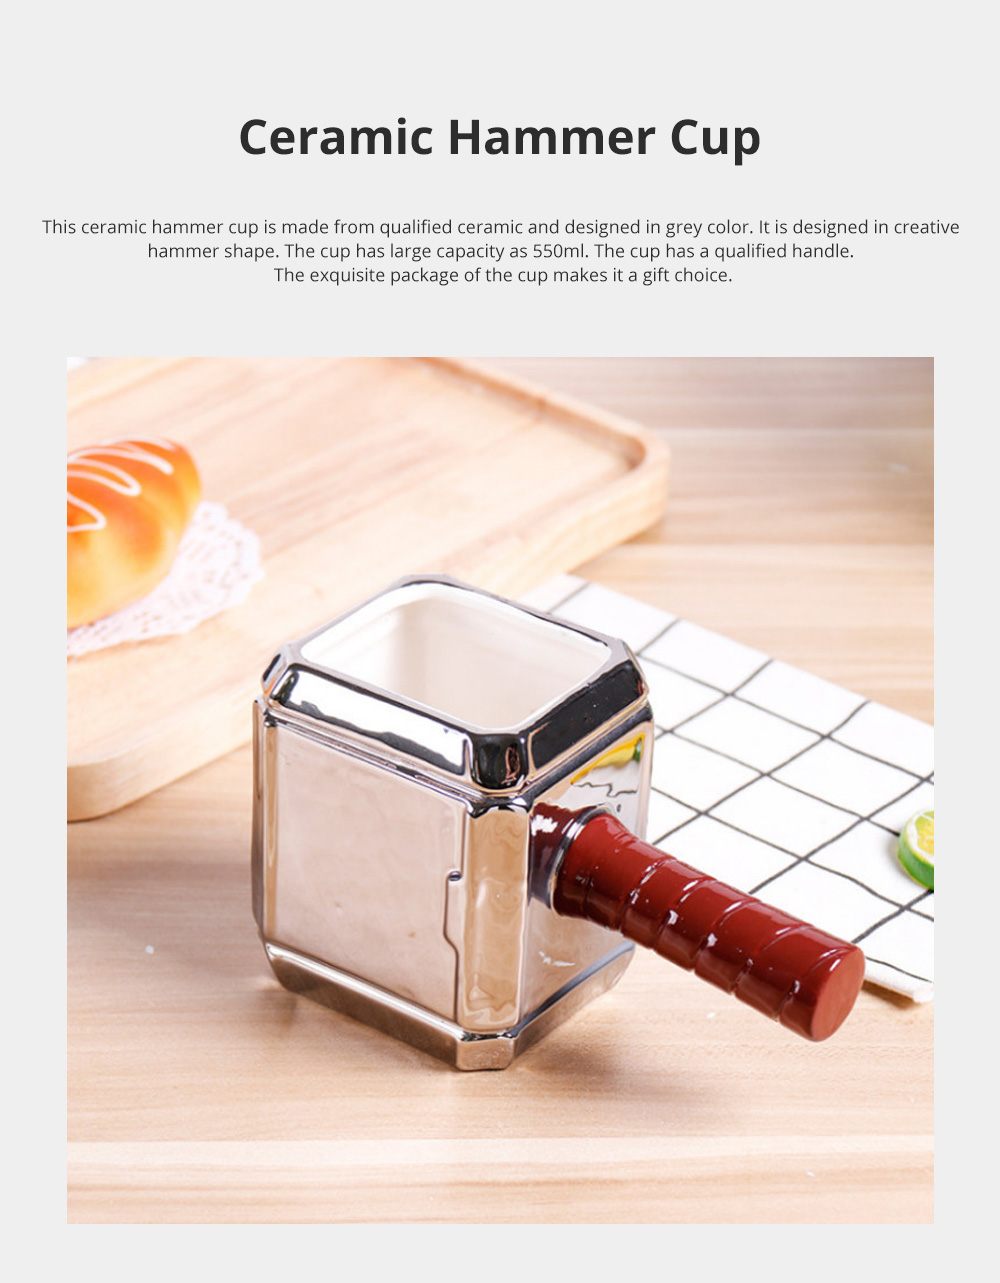 Ceramic Hammer Cup for Gift Choice Family Use Large Capacity Mug Personalized 3D Hammer Water Cup 0